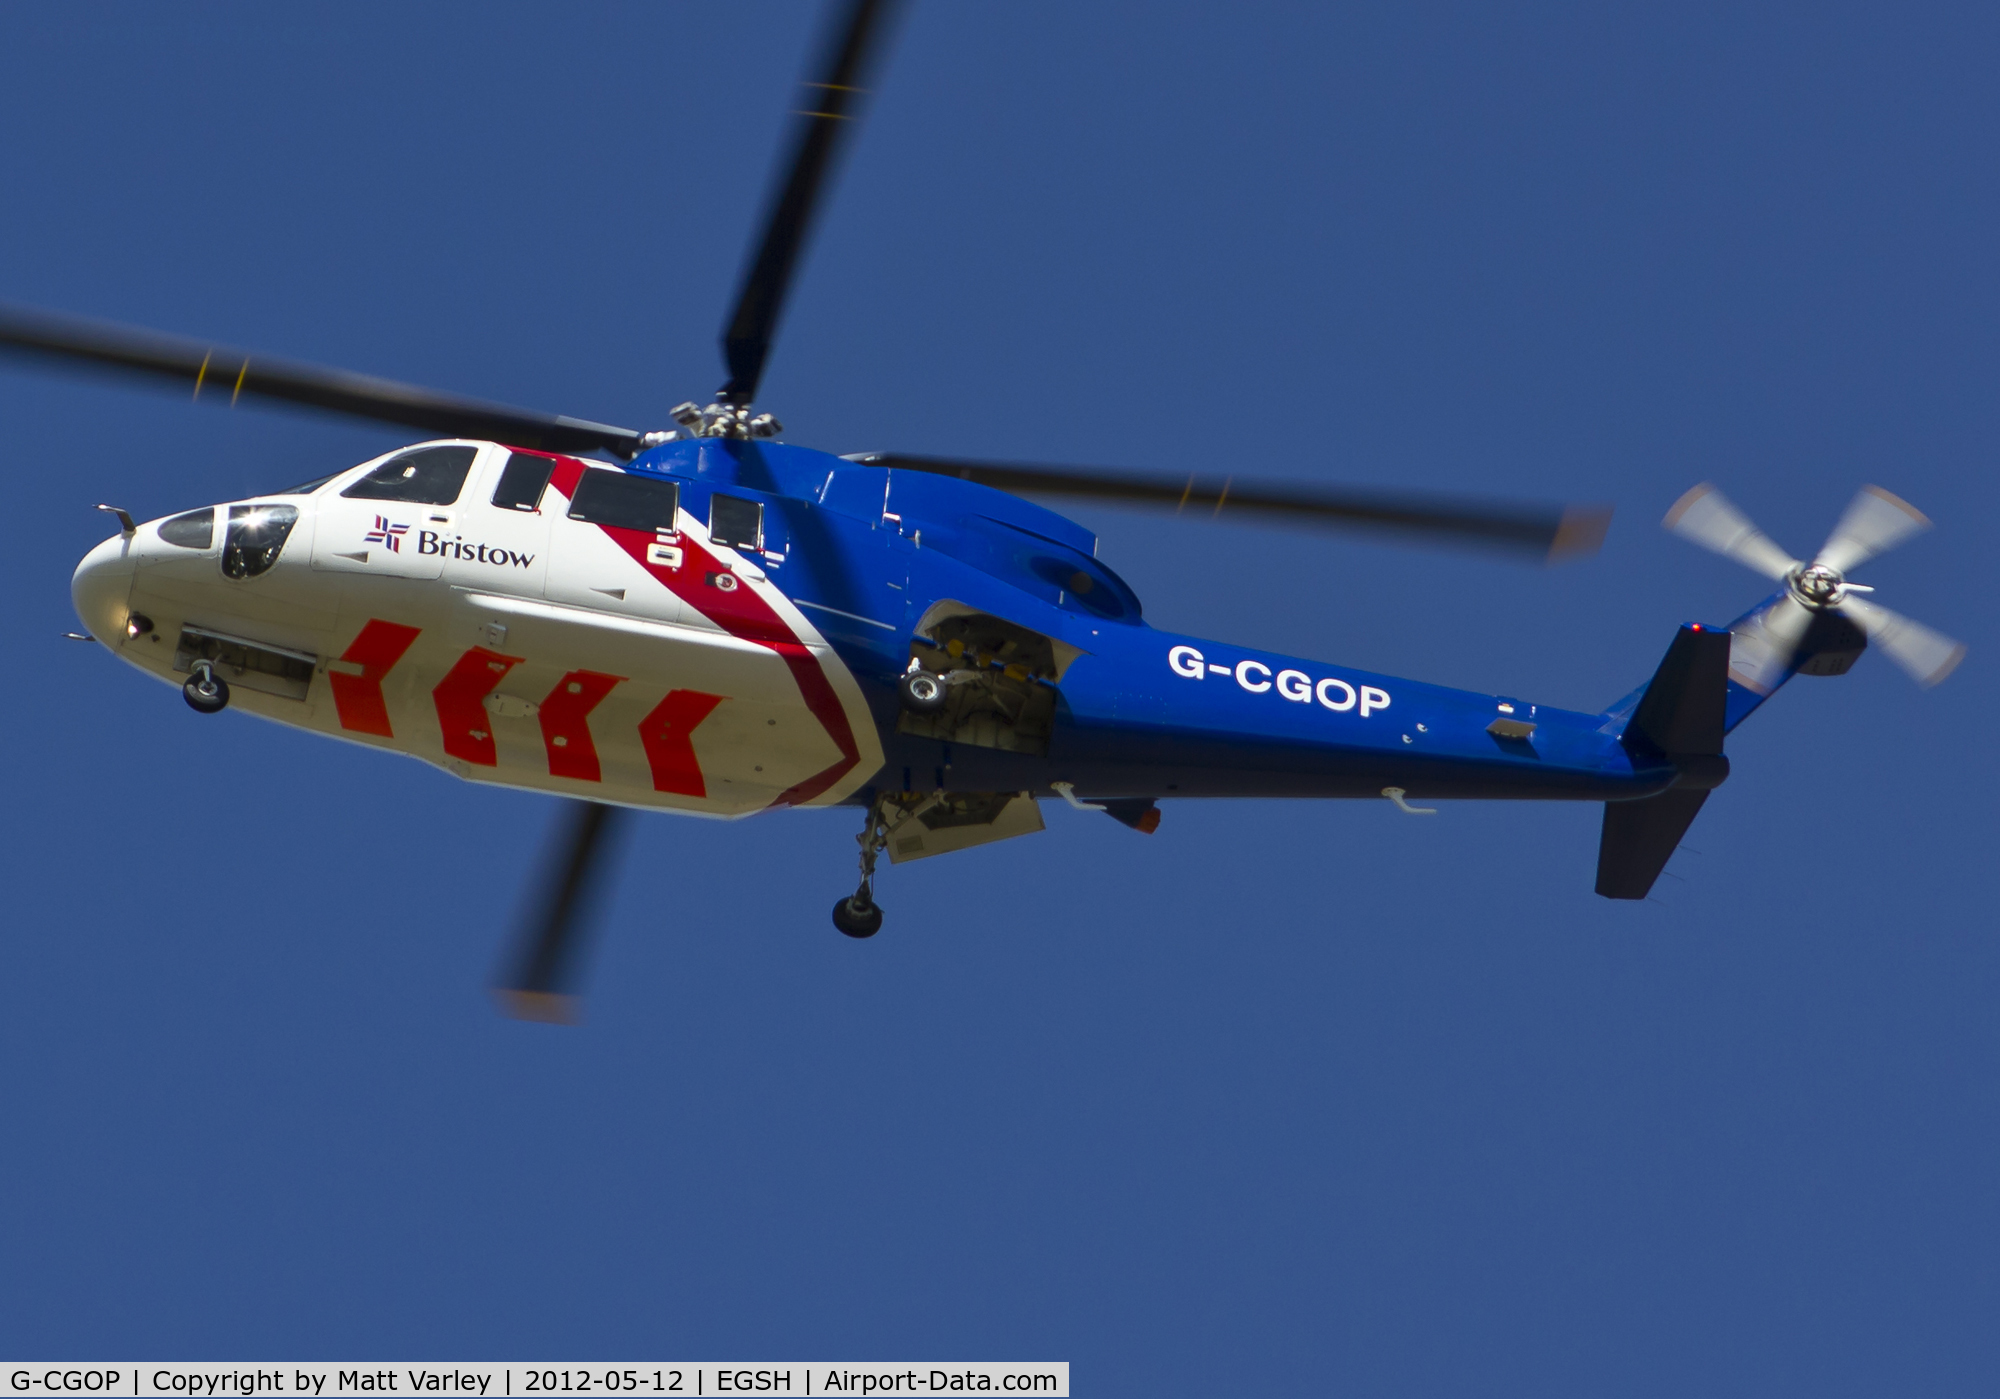 G-CGOP, 2010 Sikorsky S-76C C/N 760778, Bristow 521 arriving at EGSH from humberside.